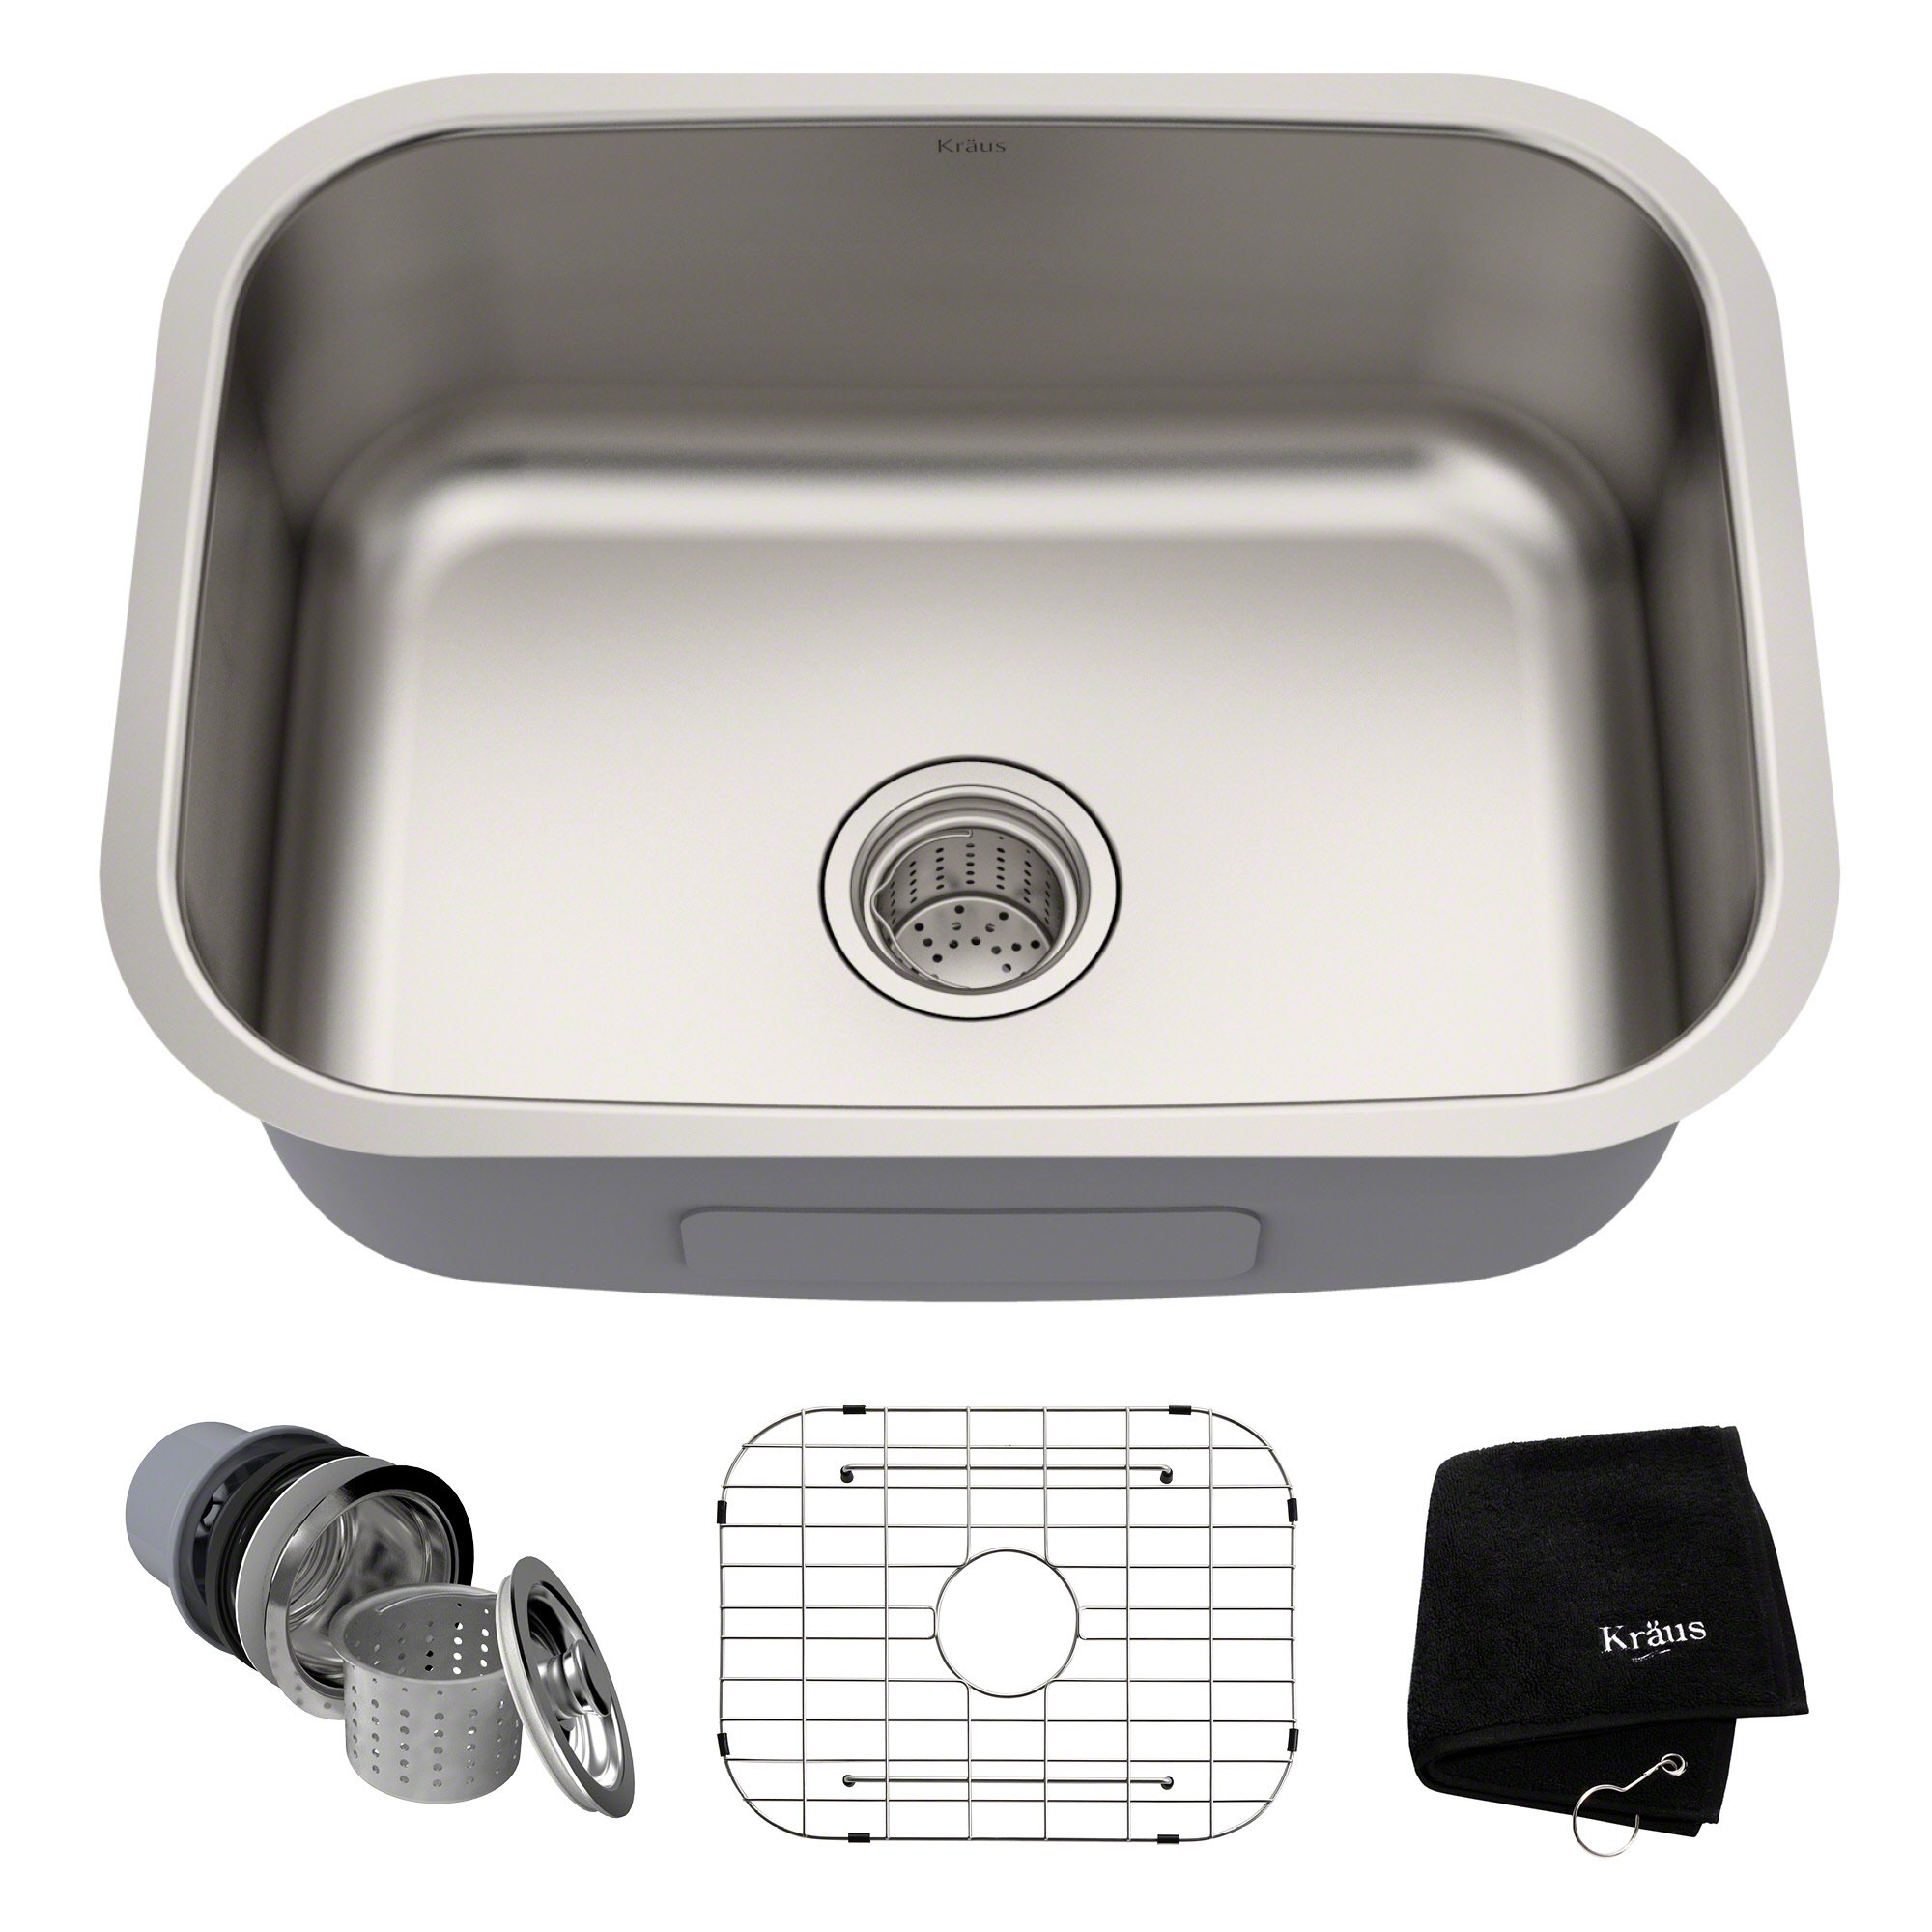 Kraus KBU12 23 inch Undermount Single Bowl 16 gauge Stainless Steel Kitchen Sink by Kraus (Image #1)